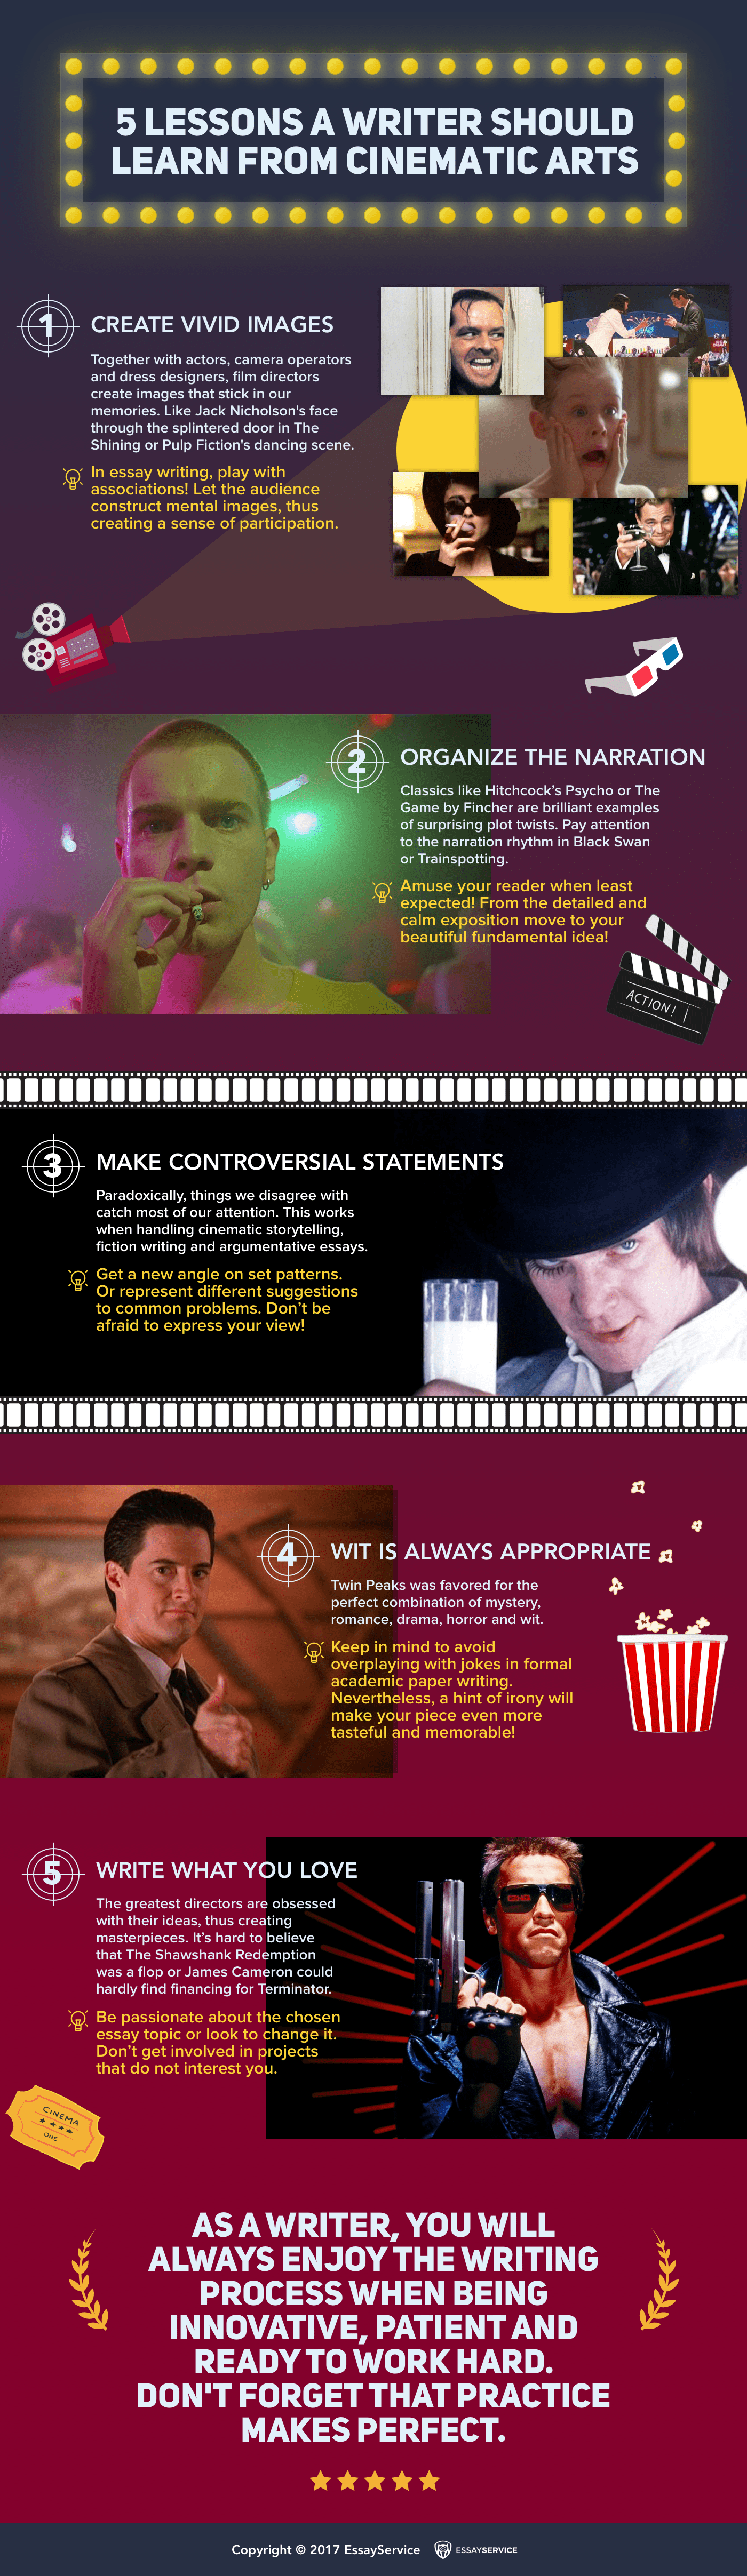 inforgraphics on creative writing lessons from cinema